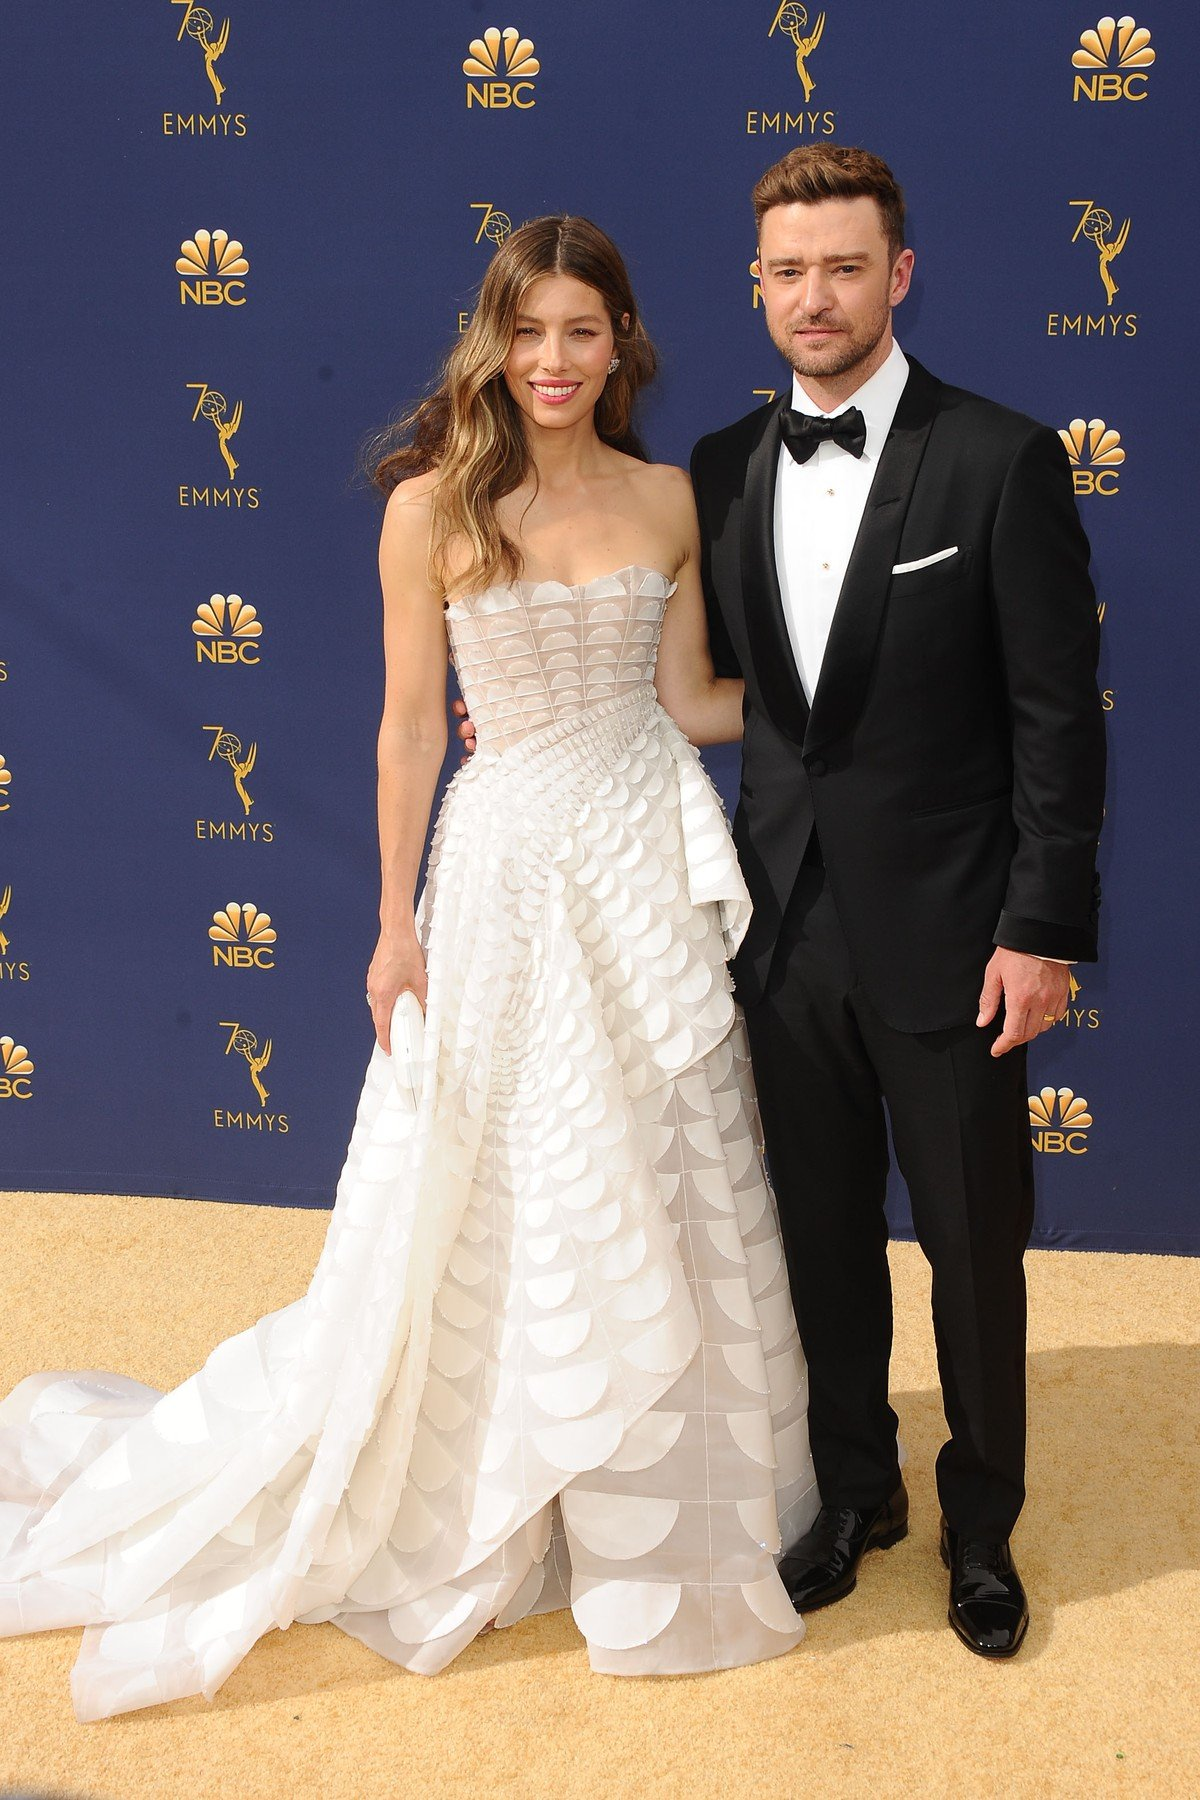 , Los Angeles, CA -20180917 - The 70th Primetime Emmy Awards Red Carpet, at Microsoft Theater  -PICTURED: Jessica Biel, Justin Timberlake -, Image: 387154285, License: Rights-managed, Restrictions: , Model Release: no, Credit line: Profimedia, INSTAR Images